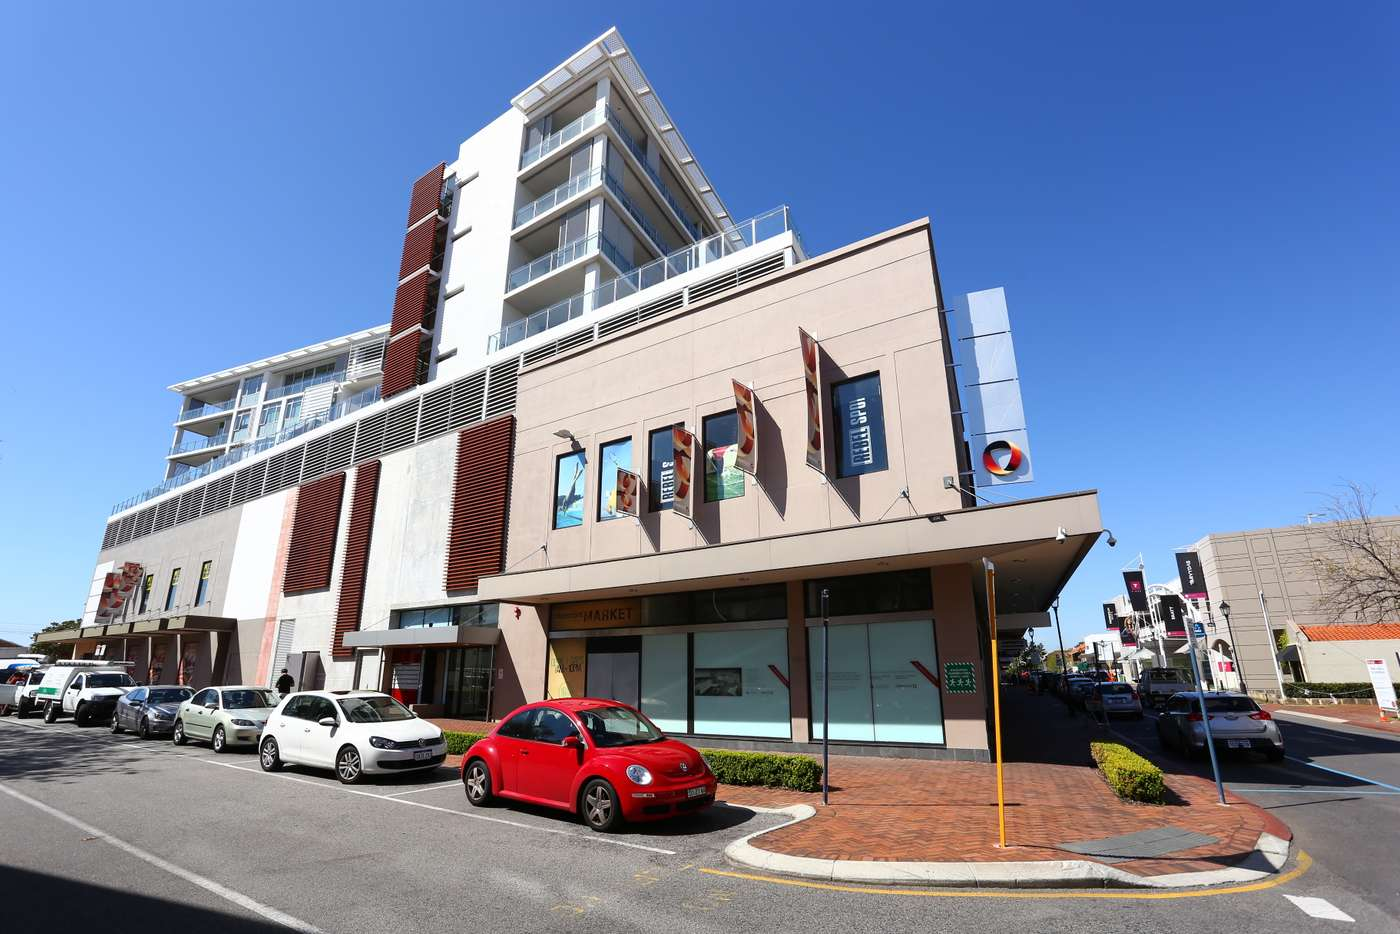 Main view of Homely apartment listing, 404/2 Bovell Lane, Claremont WA 6010